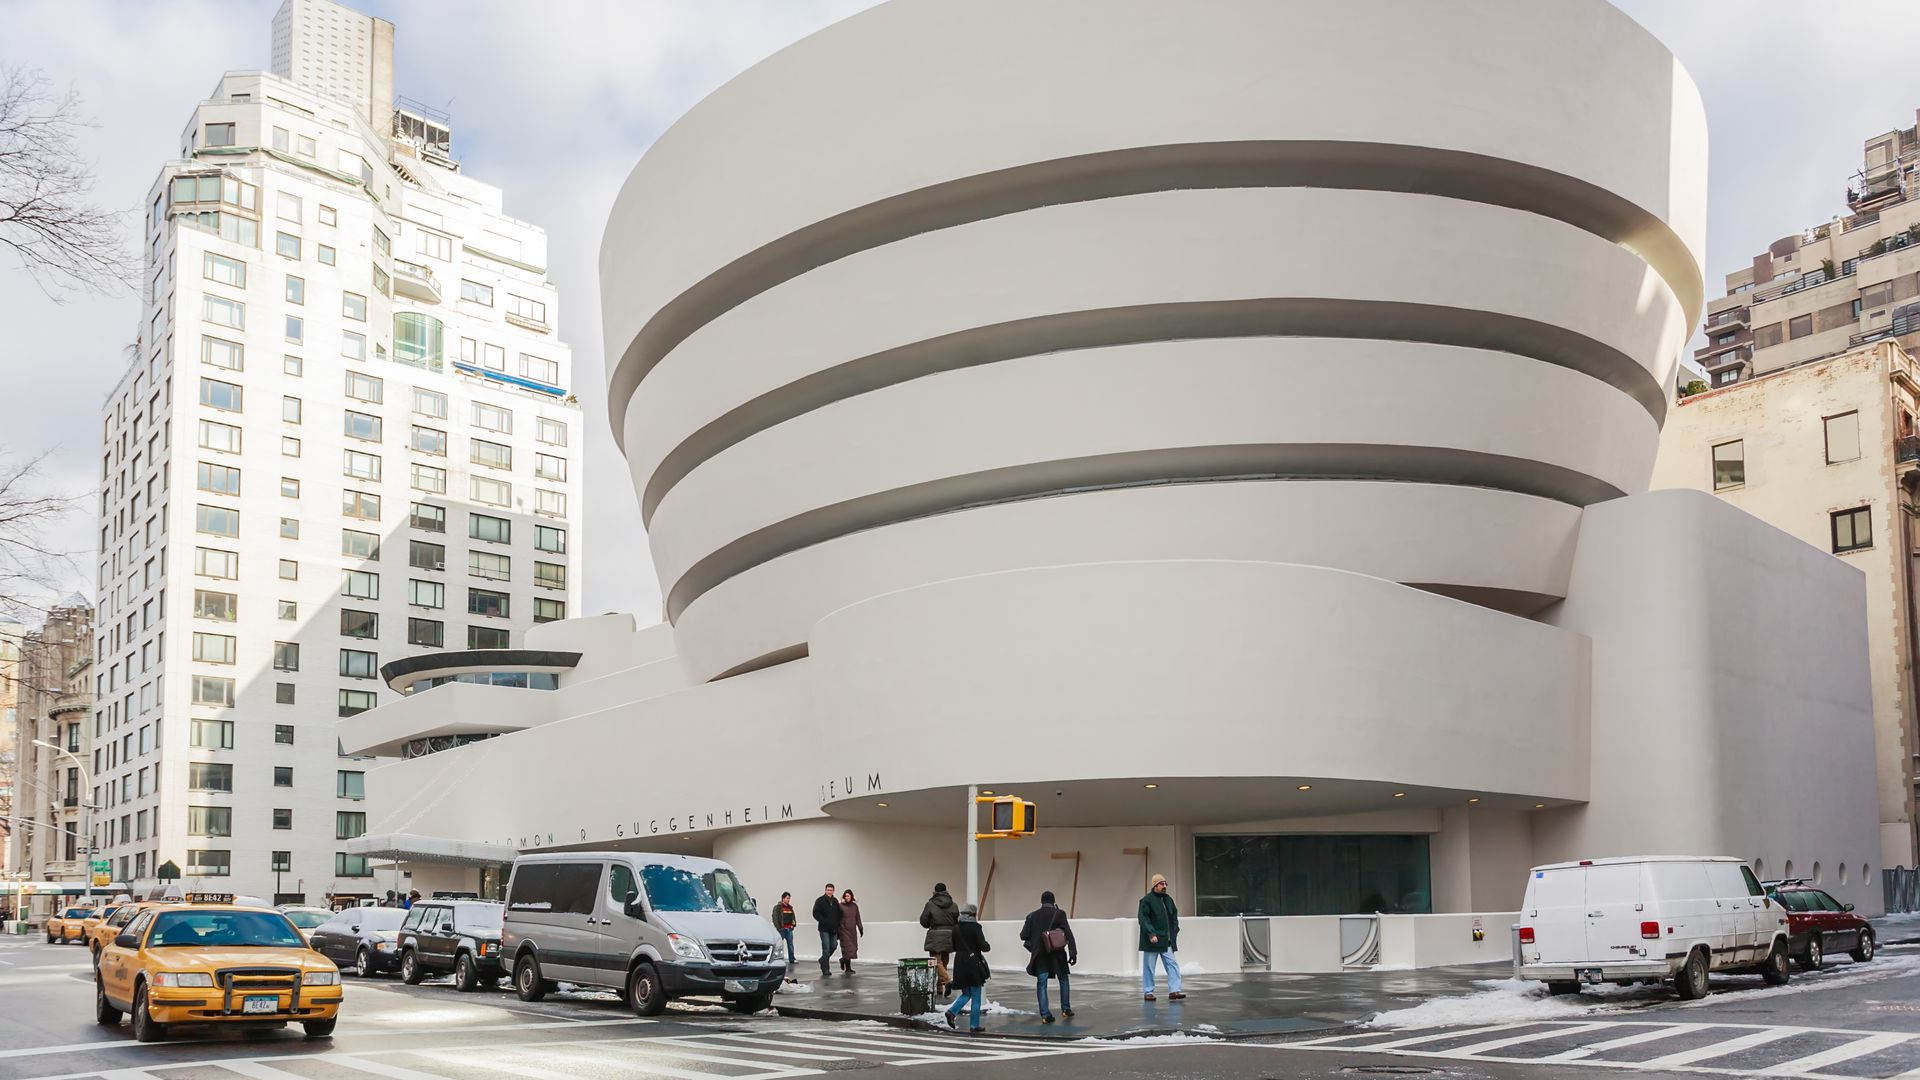 The Solomon R. Guggenheim Museum of modern and contemporary art in New York